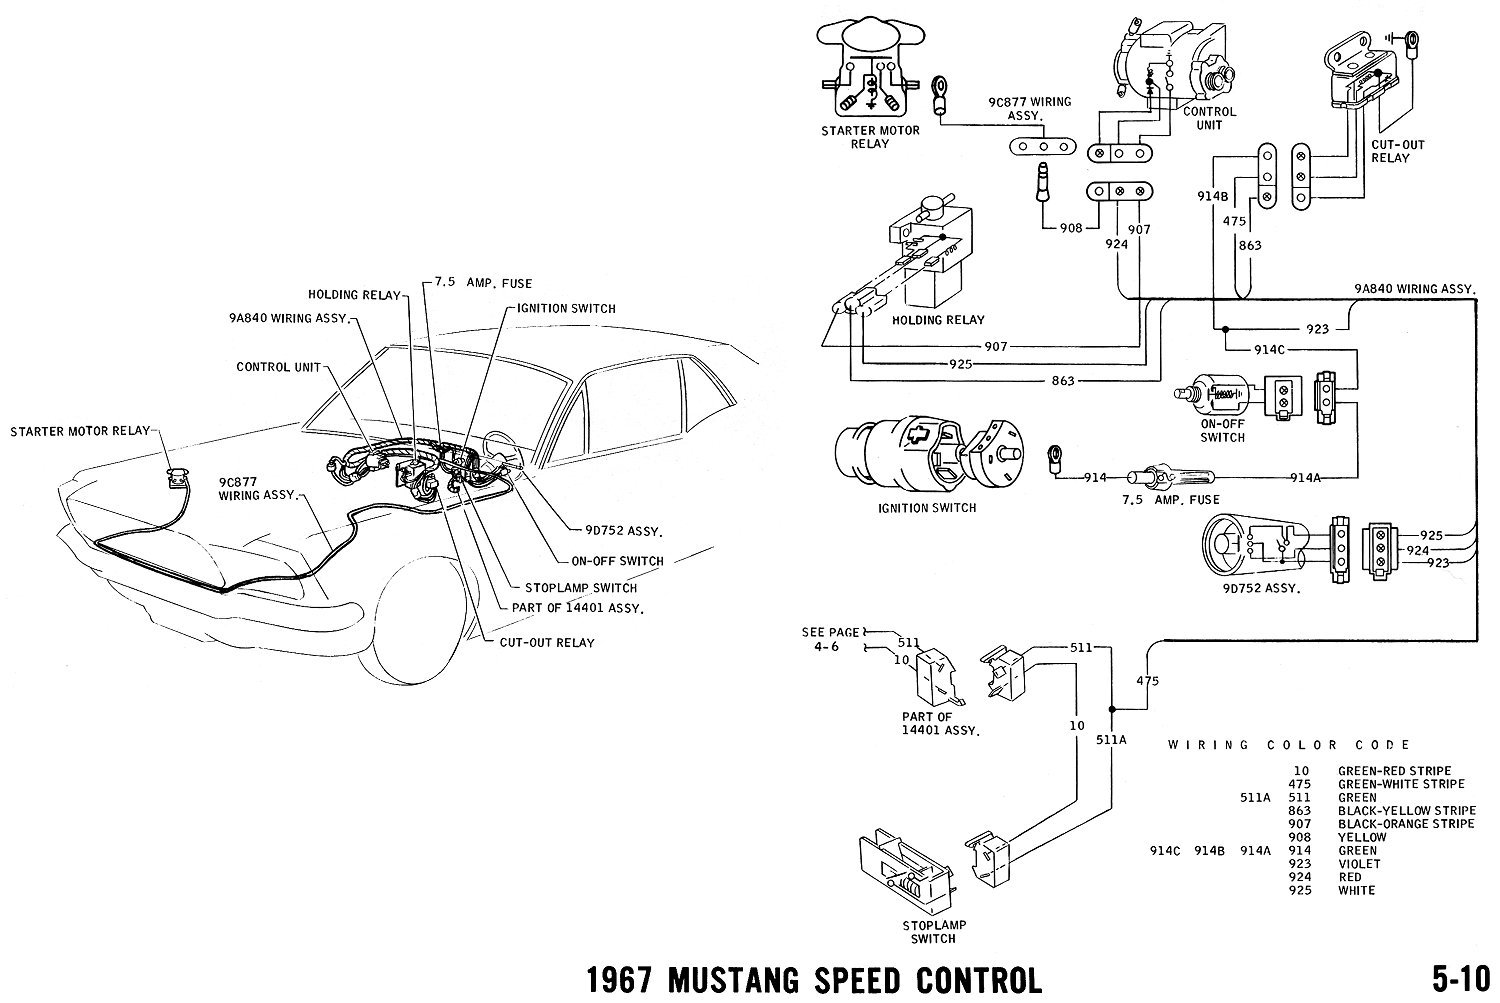 67speed 1967 mustang wiring and vacuum diagrams average joe restoration 1967 Mustang Wiring Schematic at crackthecode.co